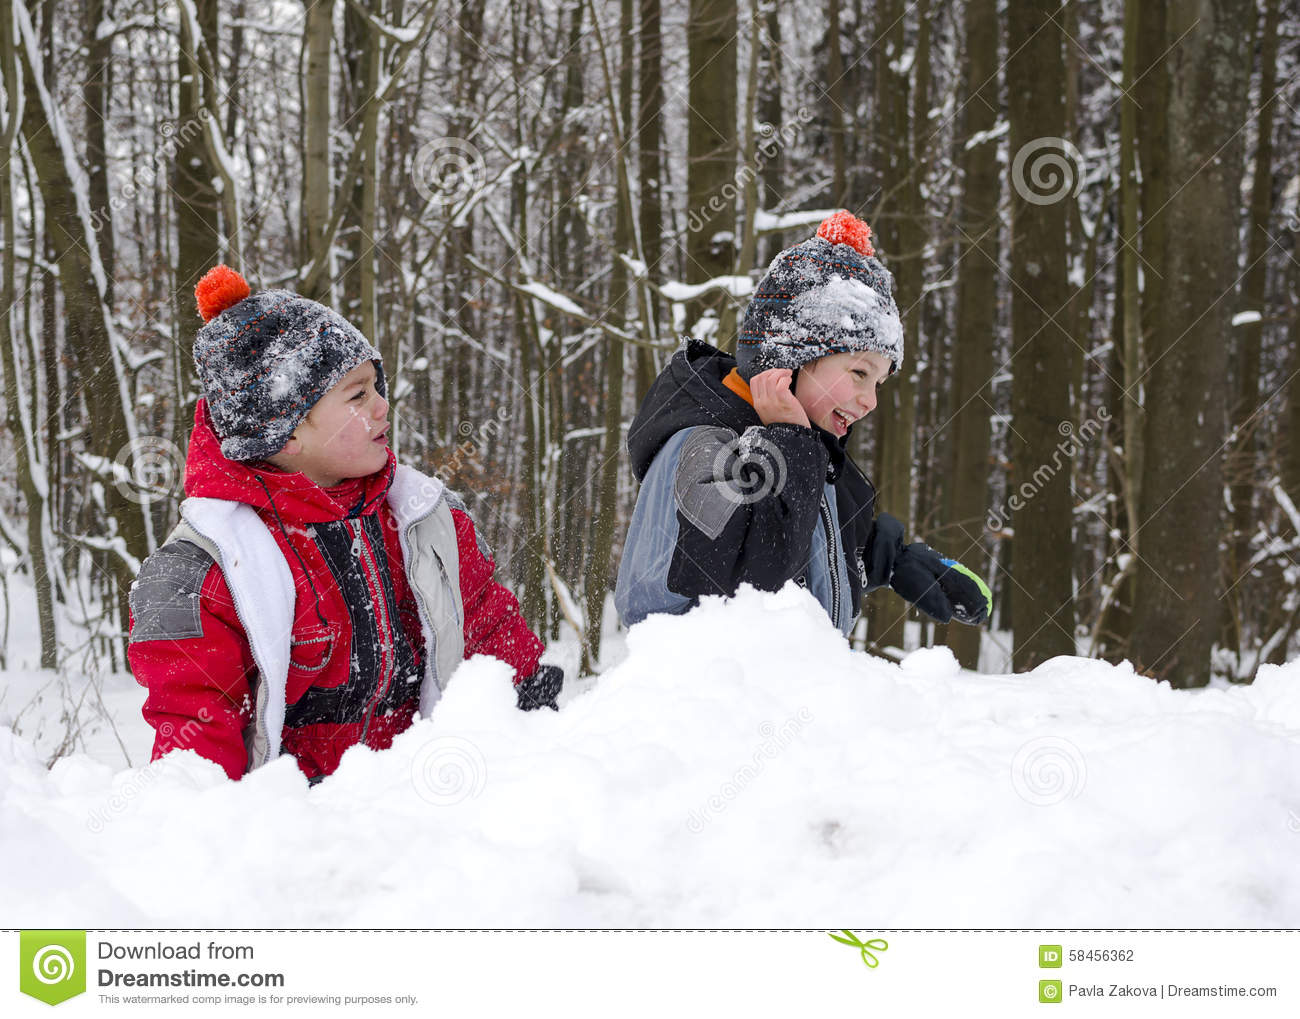 Children playing in snow in winter